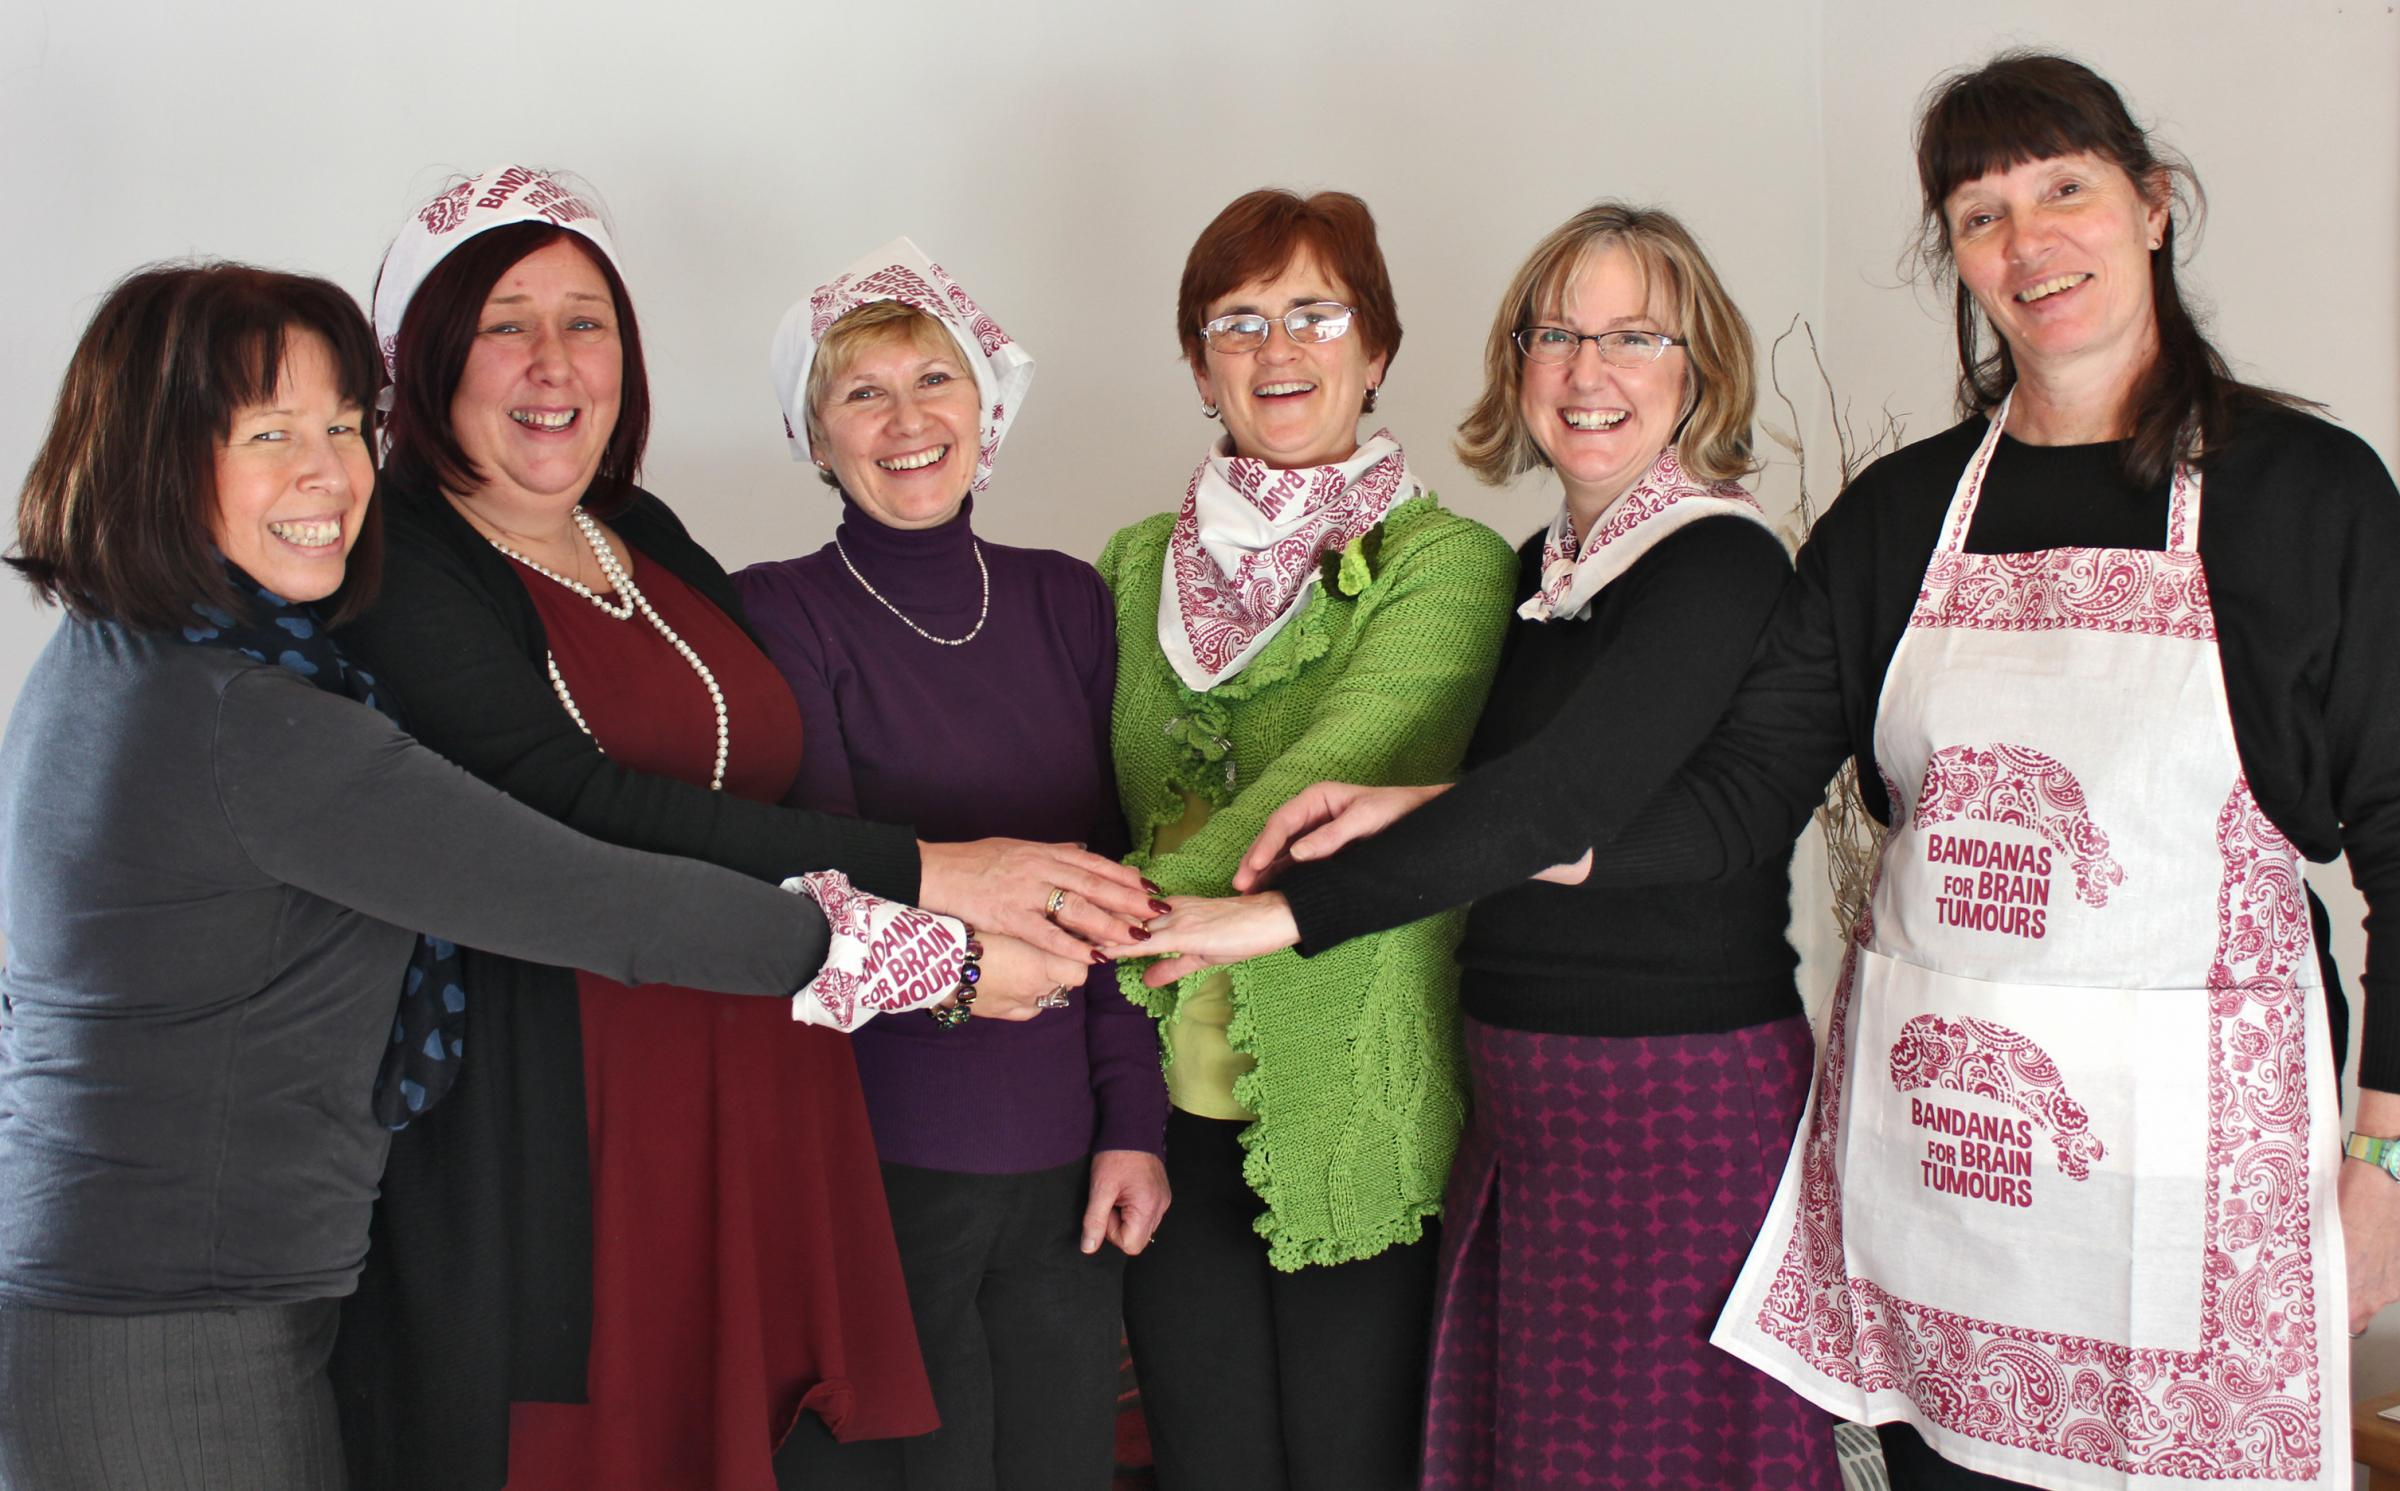 The Hammer Out team (from left)  Founder and CEO Tina Mitchell Skinner, Helen Silverthorn, Gill Chester, Rosemary Wormington, Joanna Instone and Steph Staton get  ready for Bandanas for Brain Tumours Day.